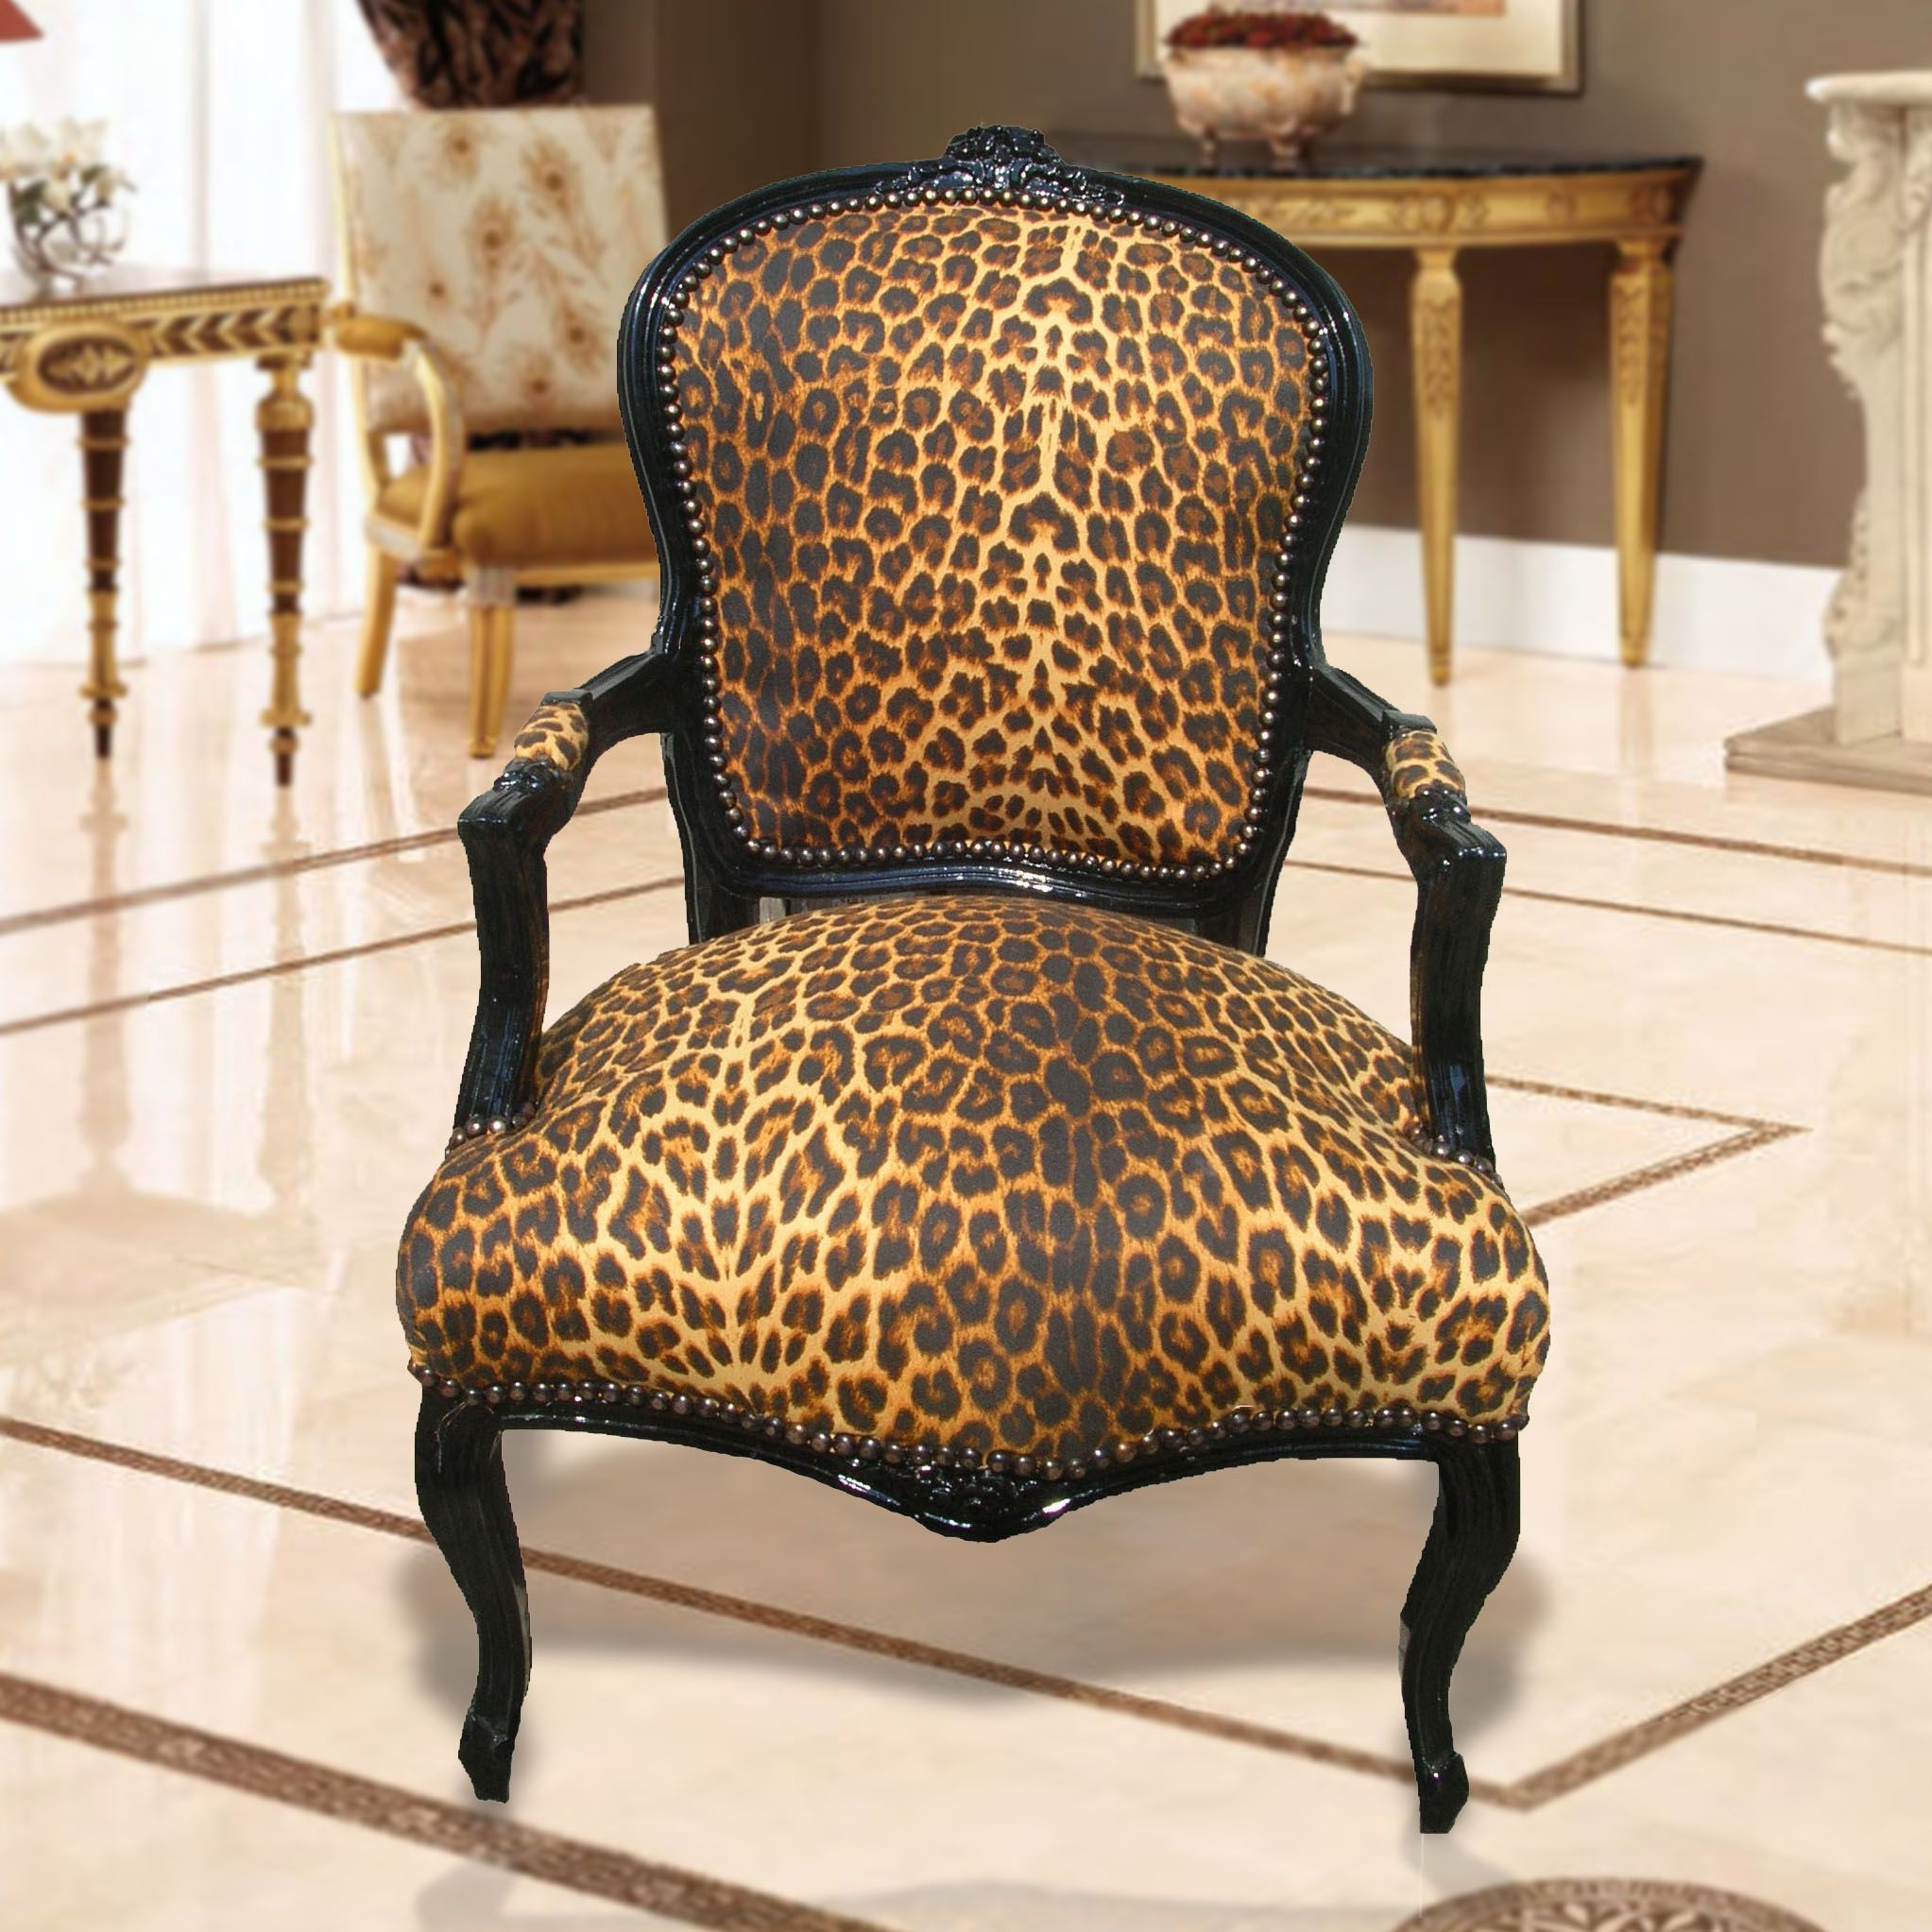 Baroque Armchair Of Louis Xv Leopard Fabric And Lacquered Black Wood Leopard Print Chair Leopard Print Decor Leopard Print Furniture